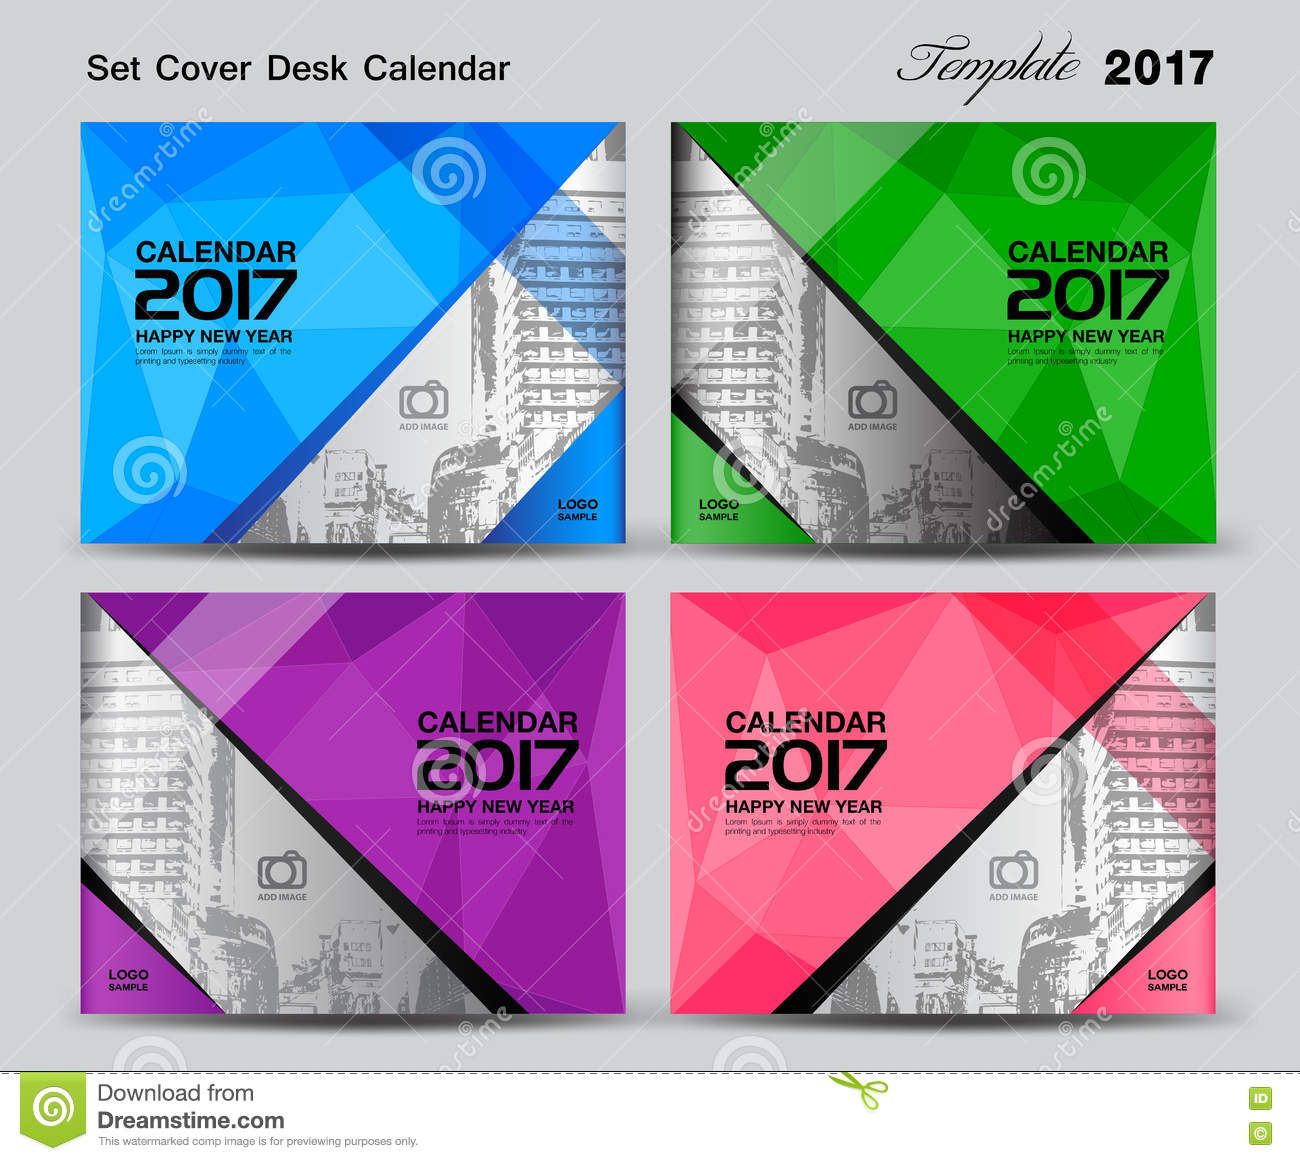 Set Cover Desk Calendar 2017 Year Template Design, Cover Design ...